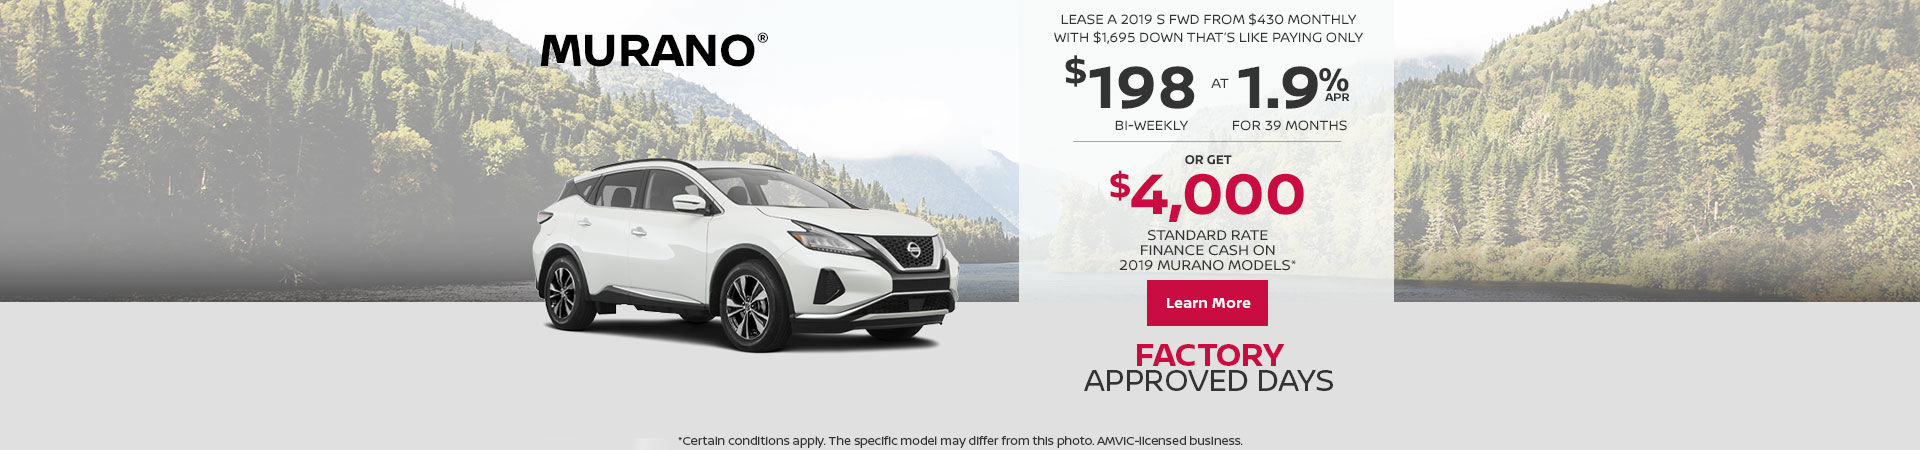 Get the Murano today!